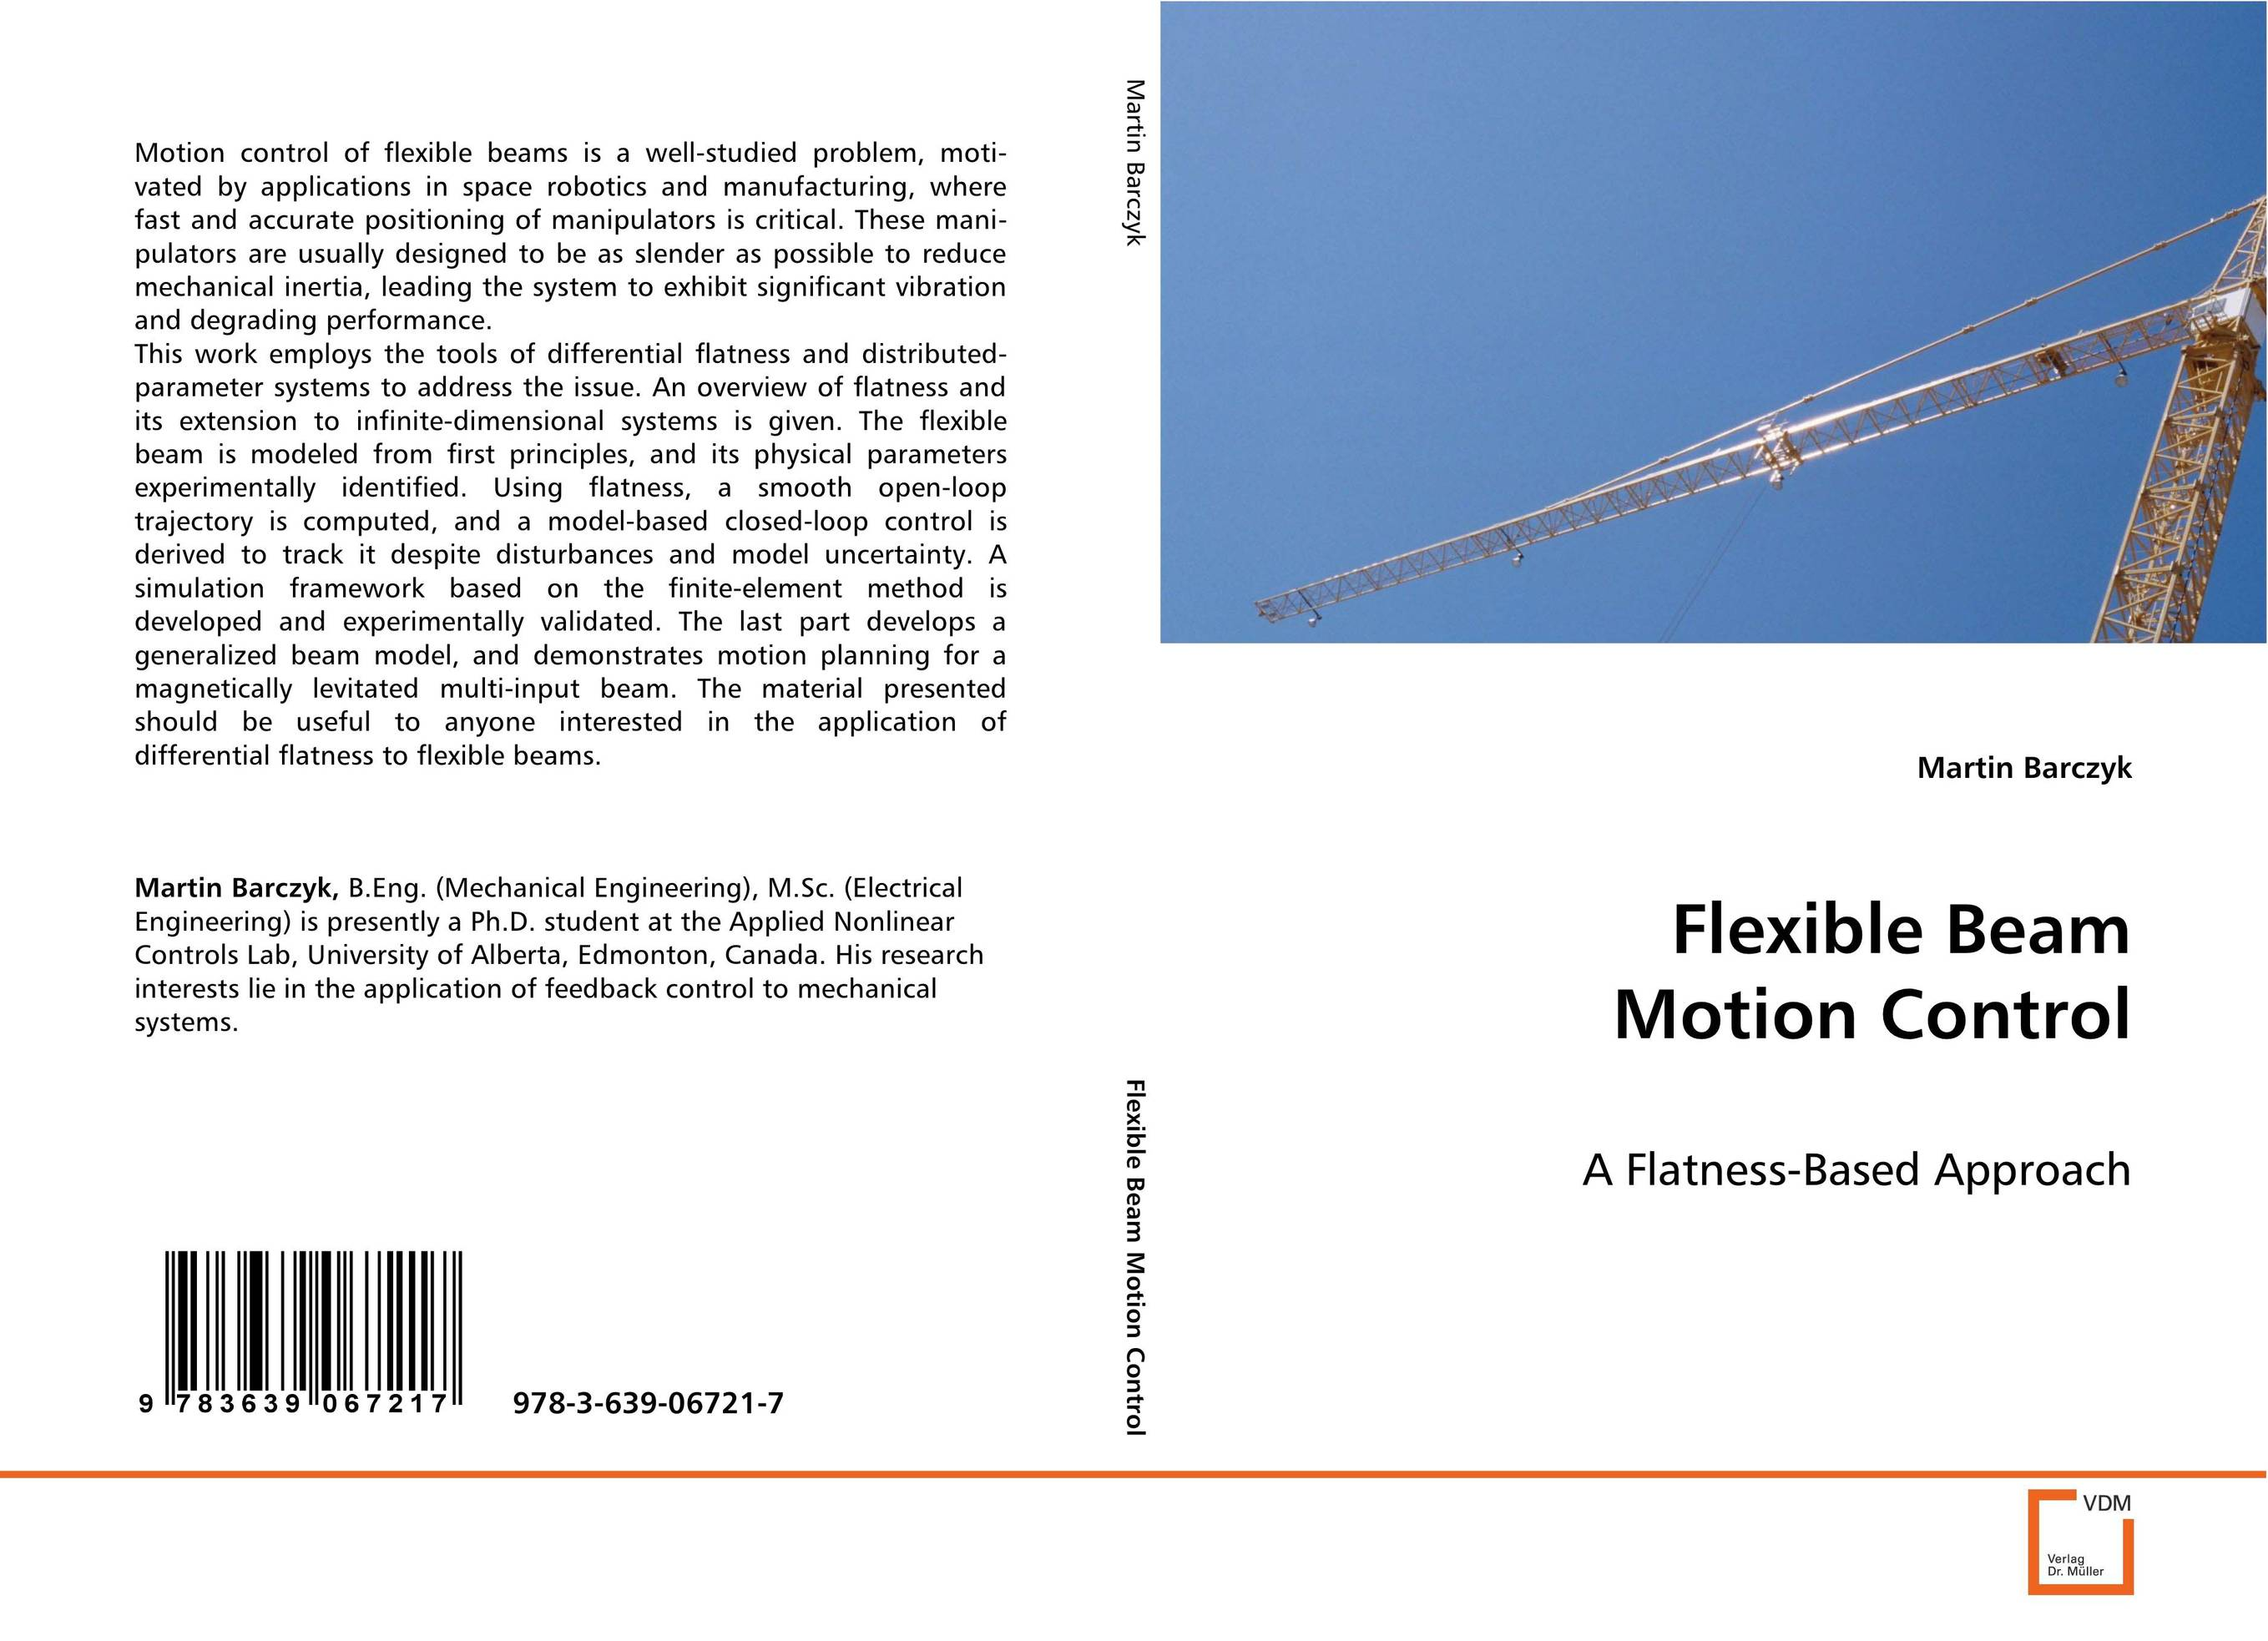 Flexible Beam Motion Control optimal and efficient motion planning of redundant robot manipulators